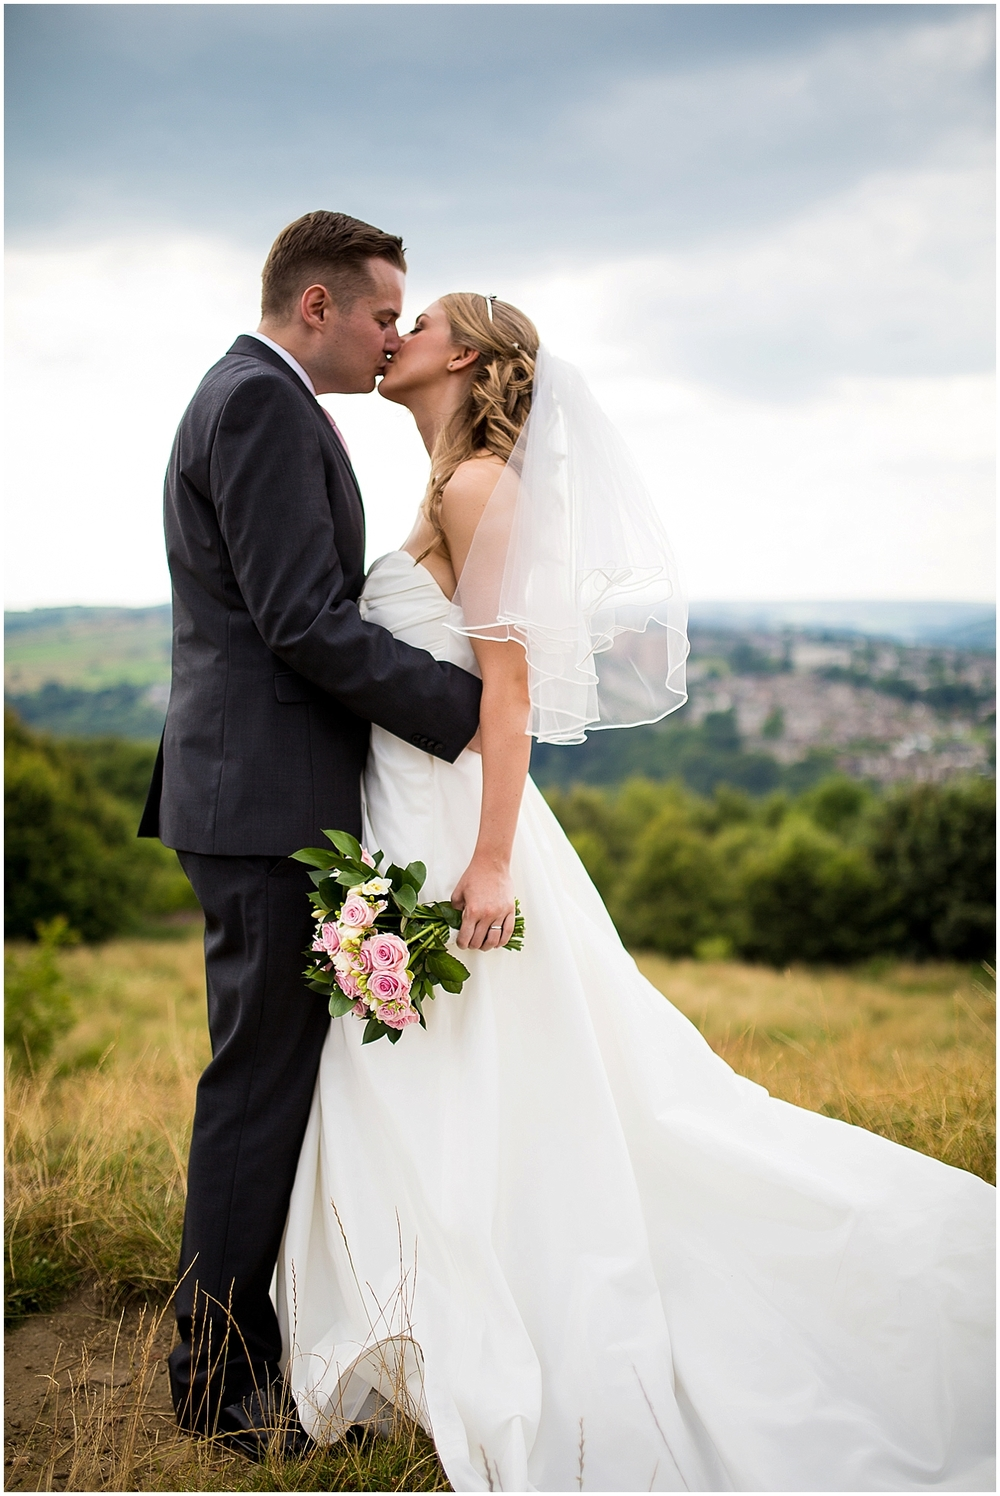 Gorgeous bride and groom at bole hill - Sheffield Wedding Photography